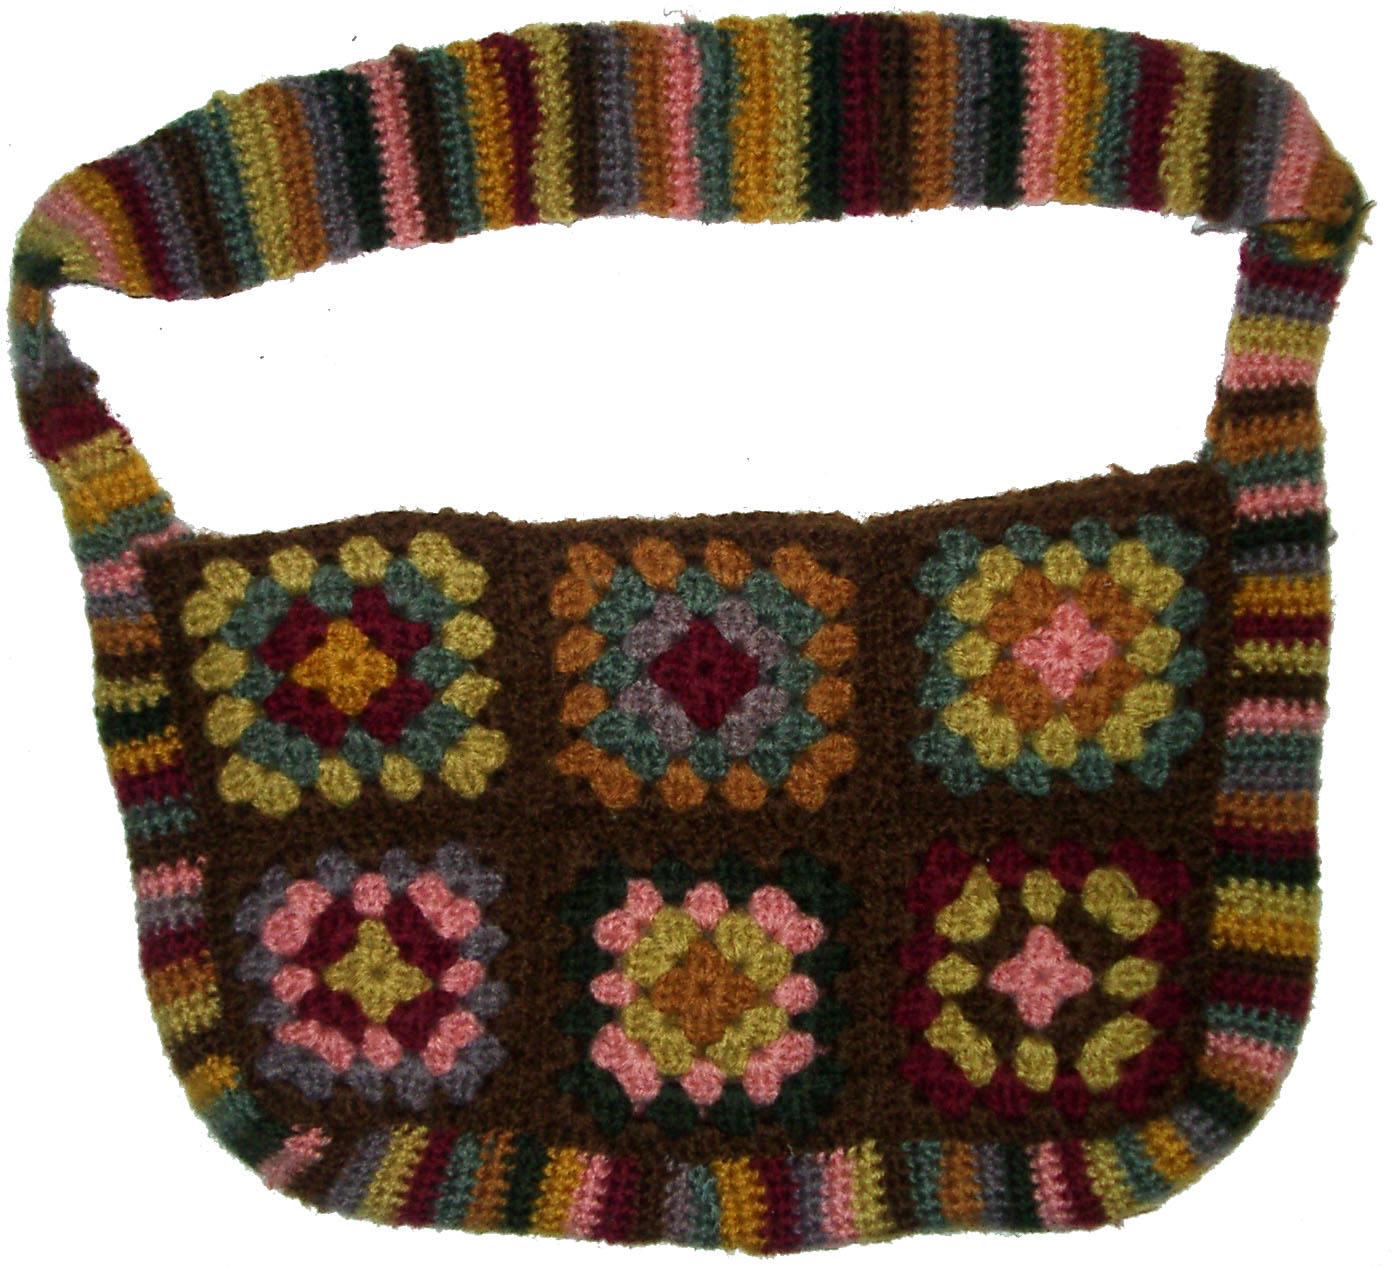 Just a Stitch Away: Crocheted Granny Square Bag